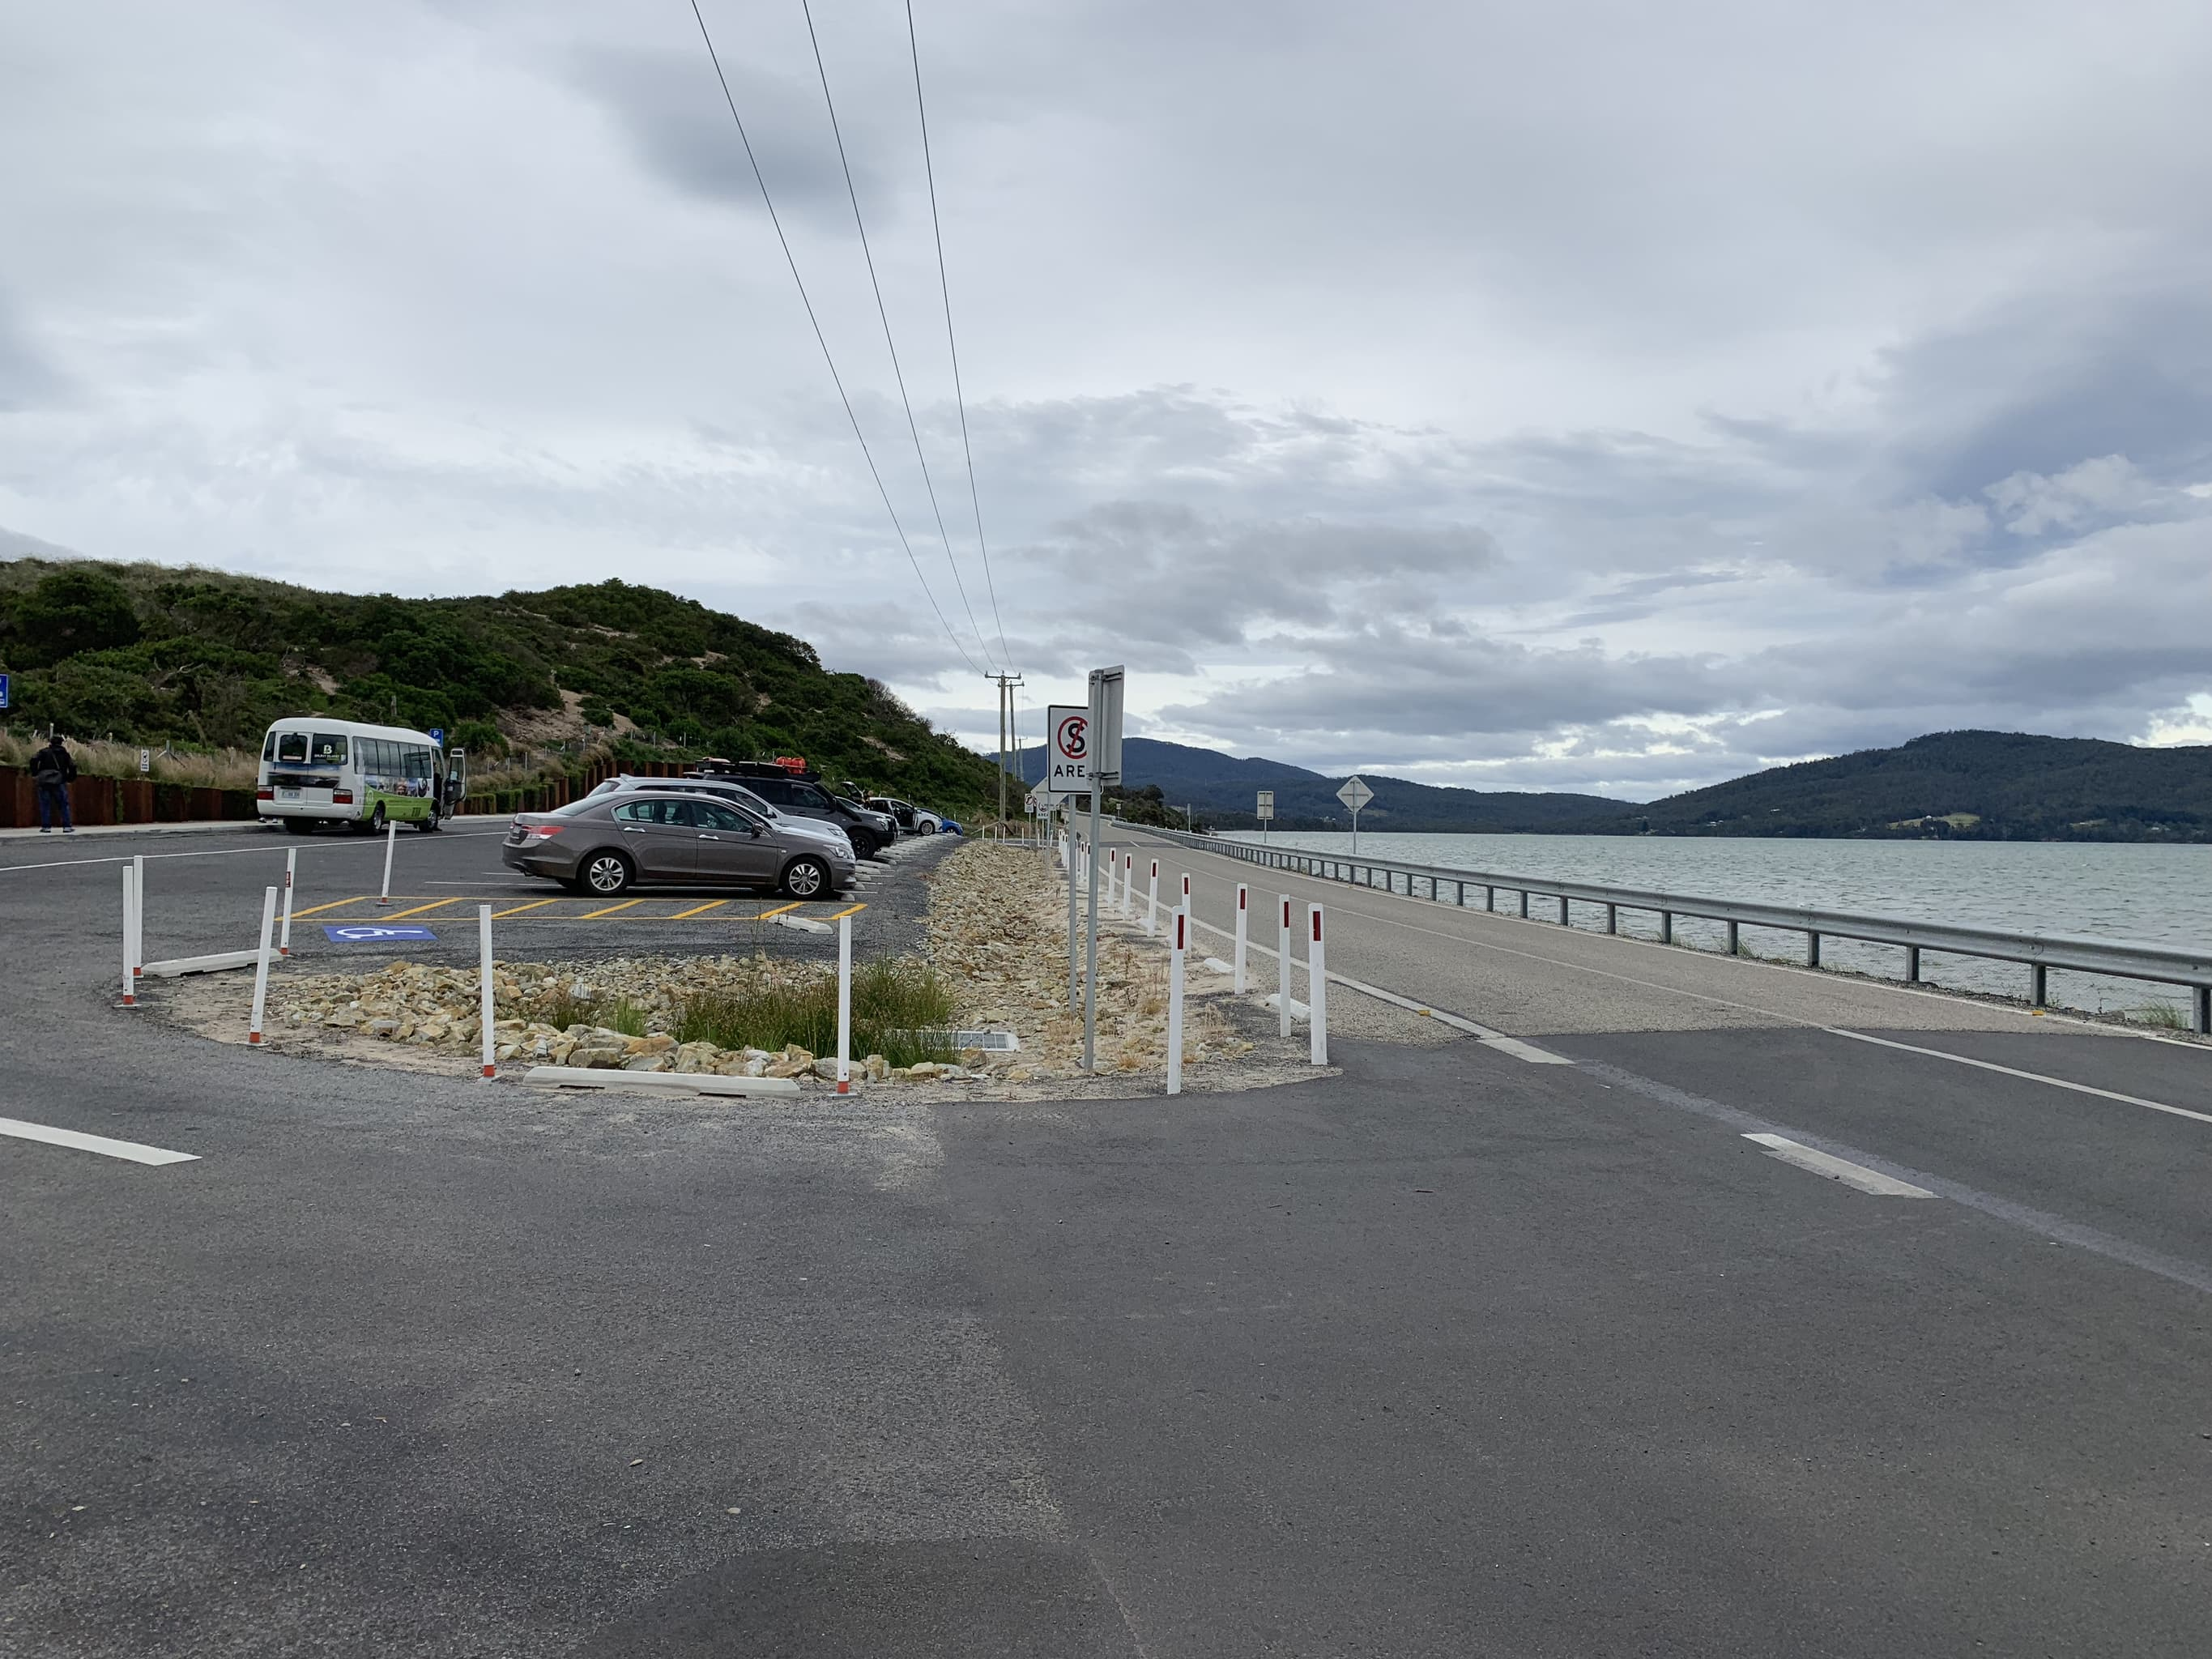 Parking lot at Bruny Island Neck lookout.